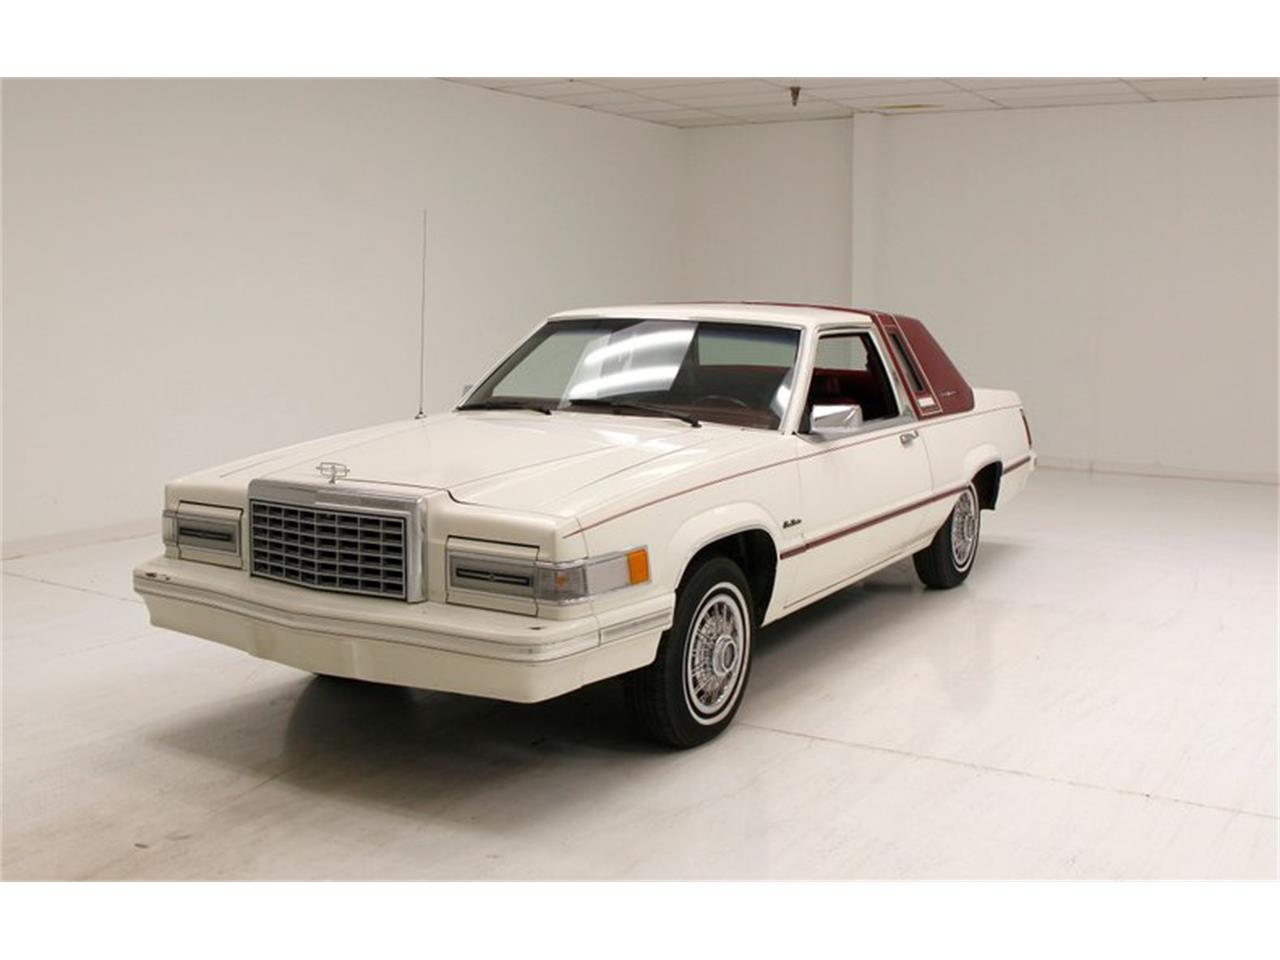 1981 Ford Thunderbird (CC-1332106) for sale in Morgantown, Pennsylvania